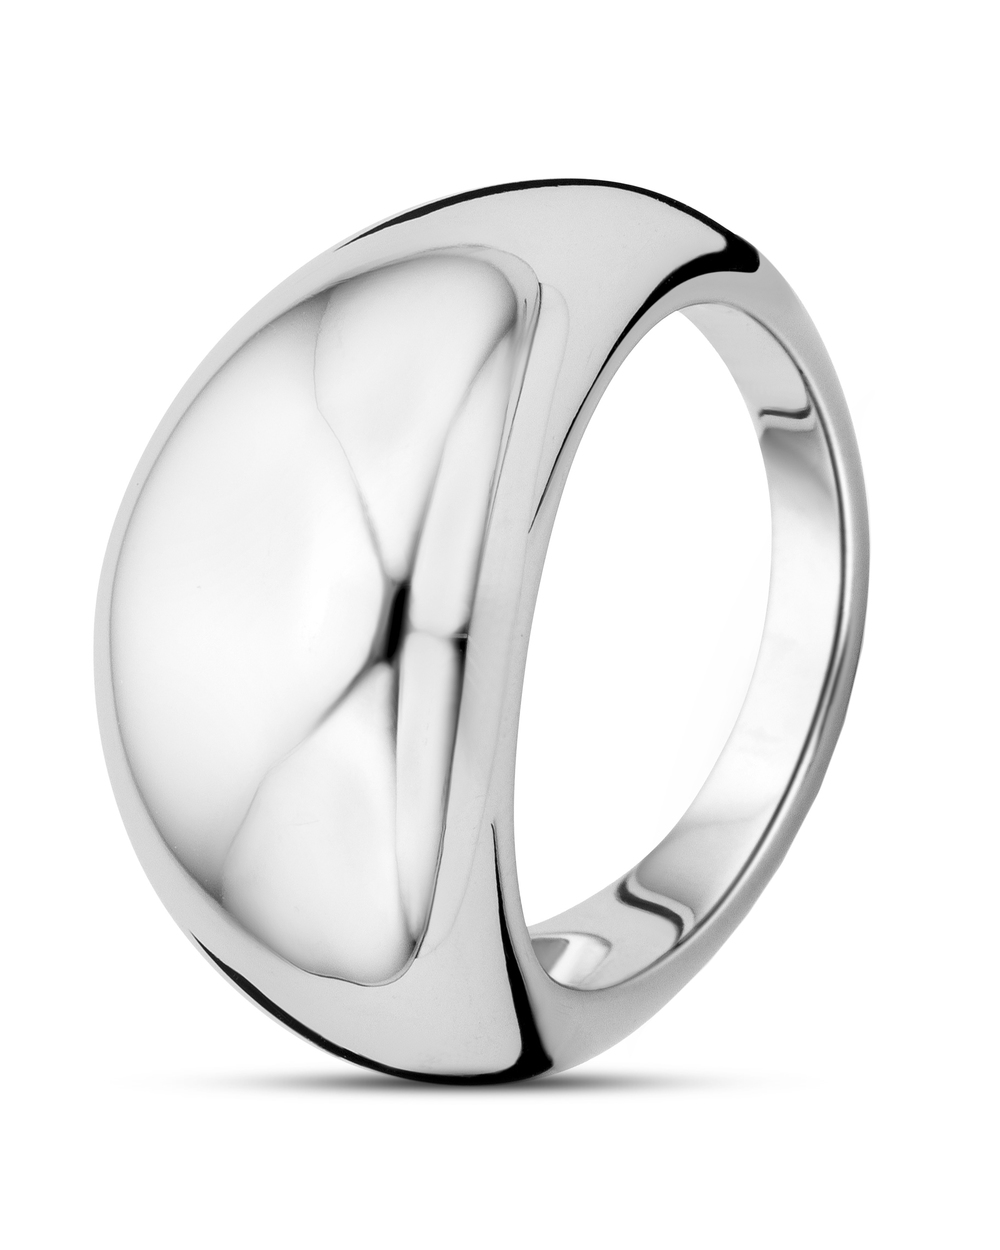 Anna Malou, Ring aus 925 Sterling Silber 54